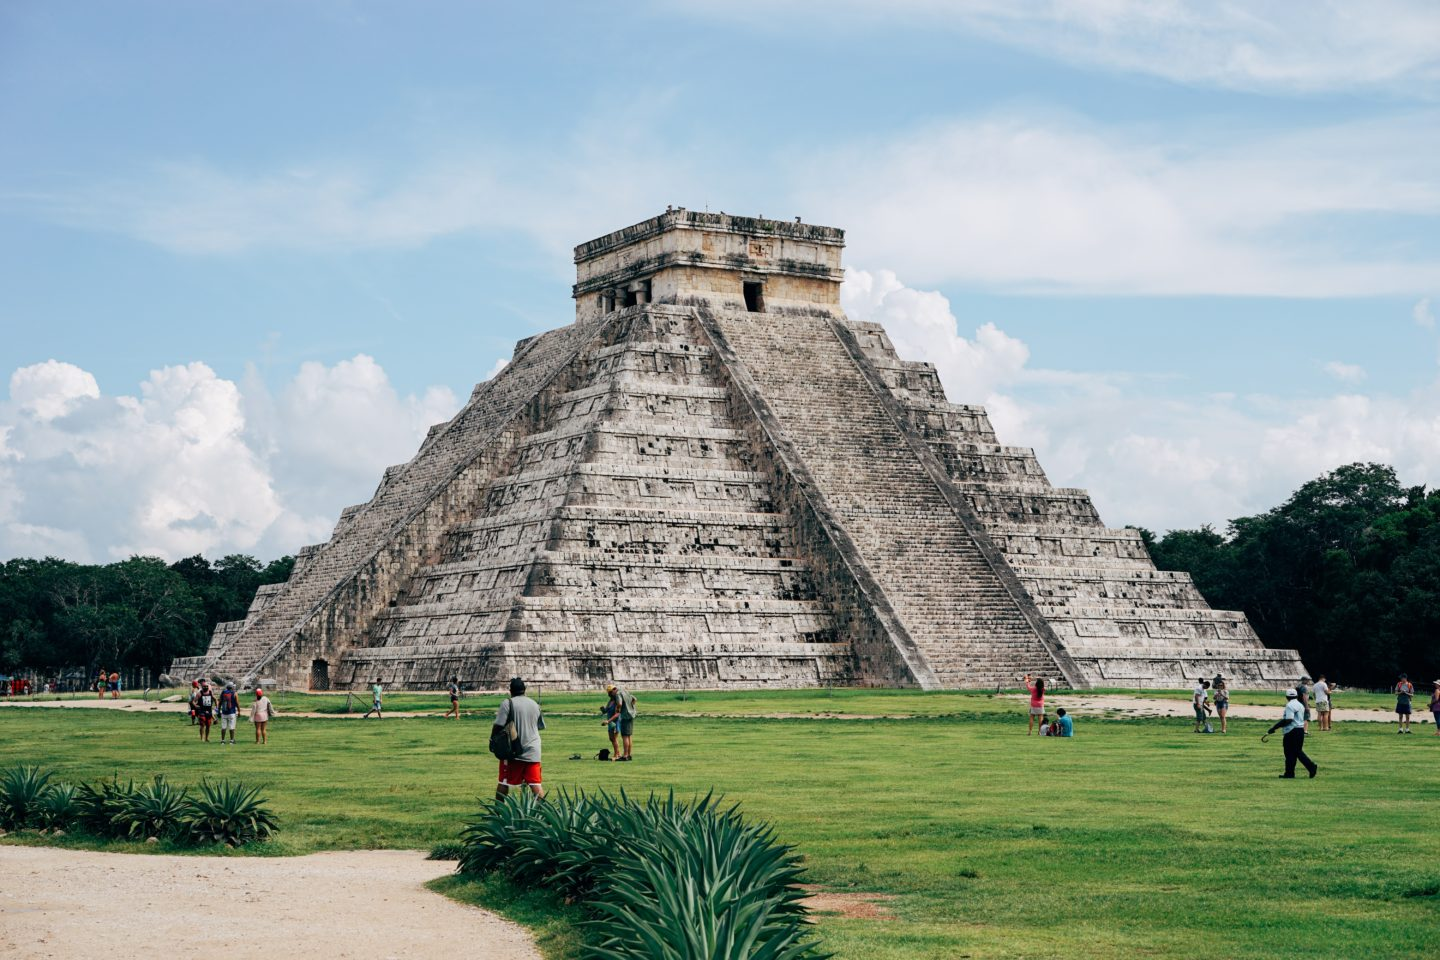 Cancun Adults Only All-Inclusive Resorts: Visit one of the 7 New Wonders of the World, Chichen Itza, while visiting Mexico.